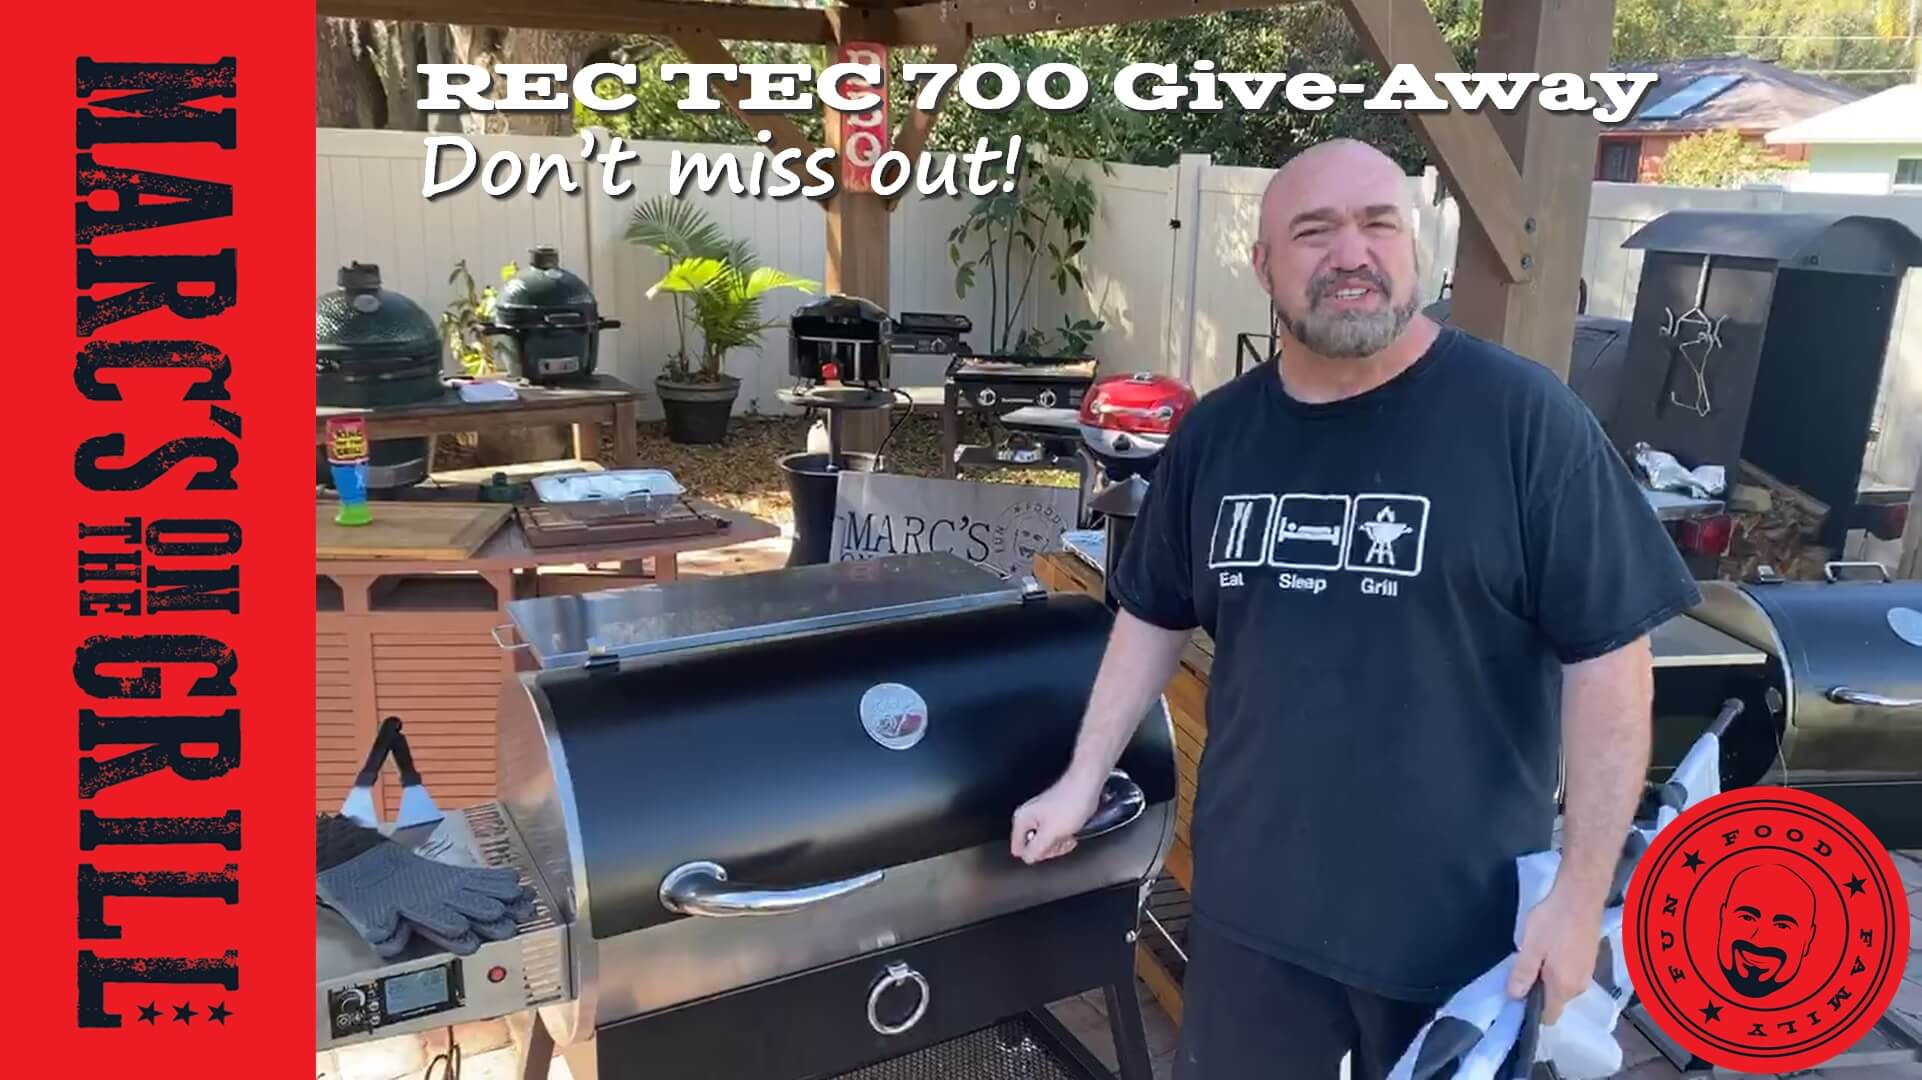 Get chances to win a brand new REC TEC 700 Pellet Grill from Marc's on the Grill and the good folks at REC TEC